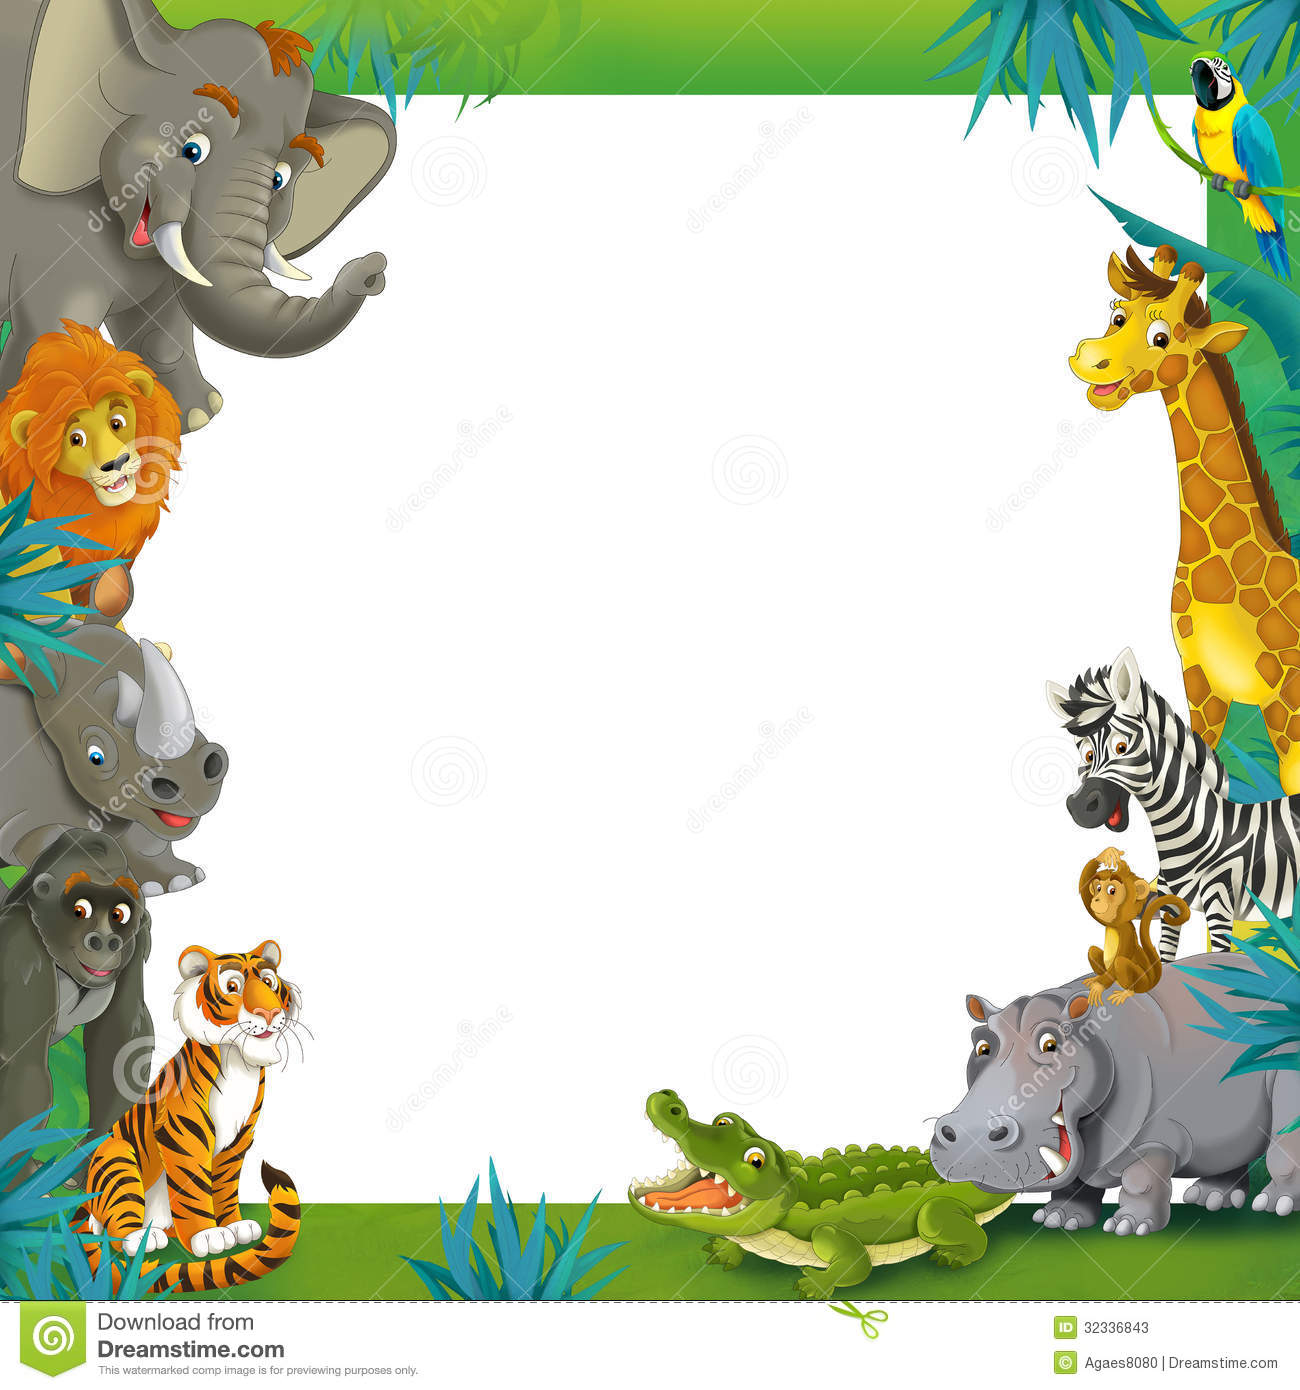 Jungle Frame Clipart.